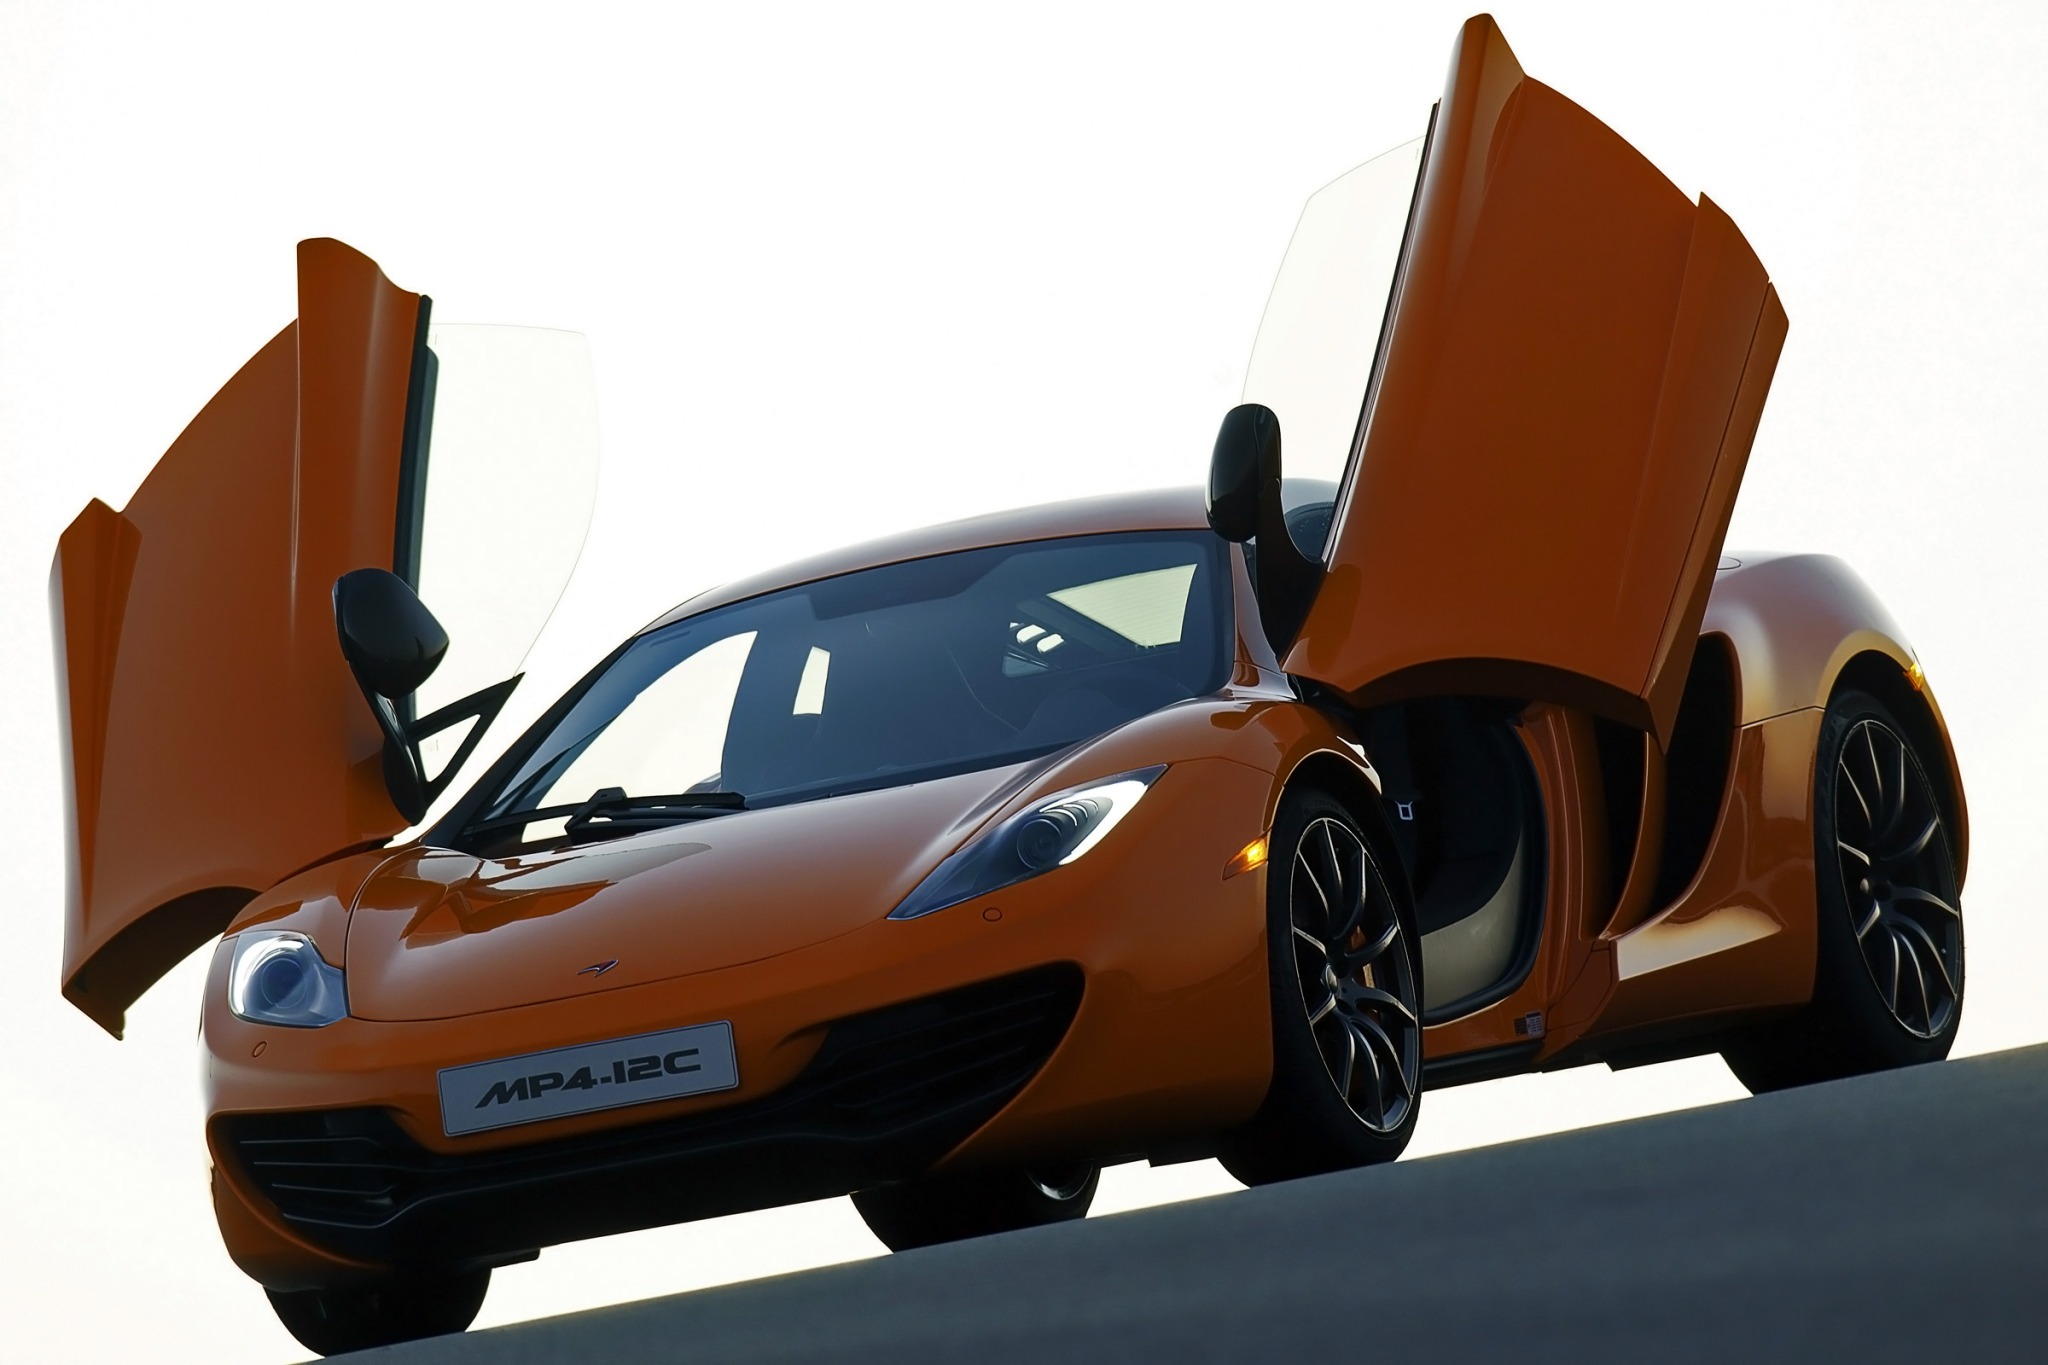 2013 McLaren MP4-12C Coup interior #3